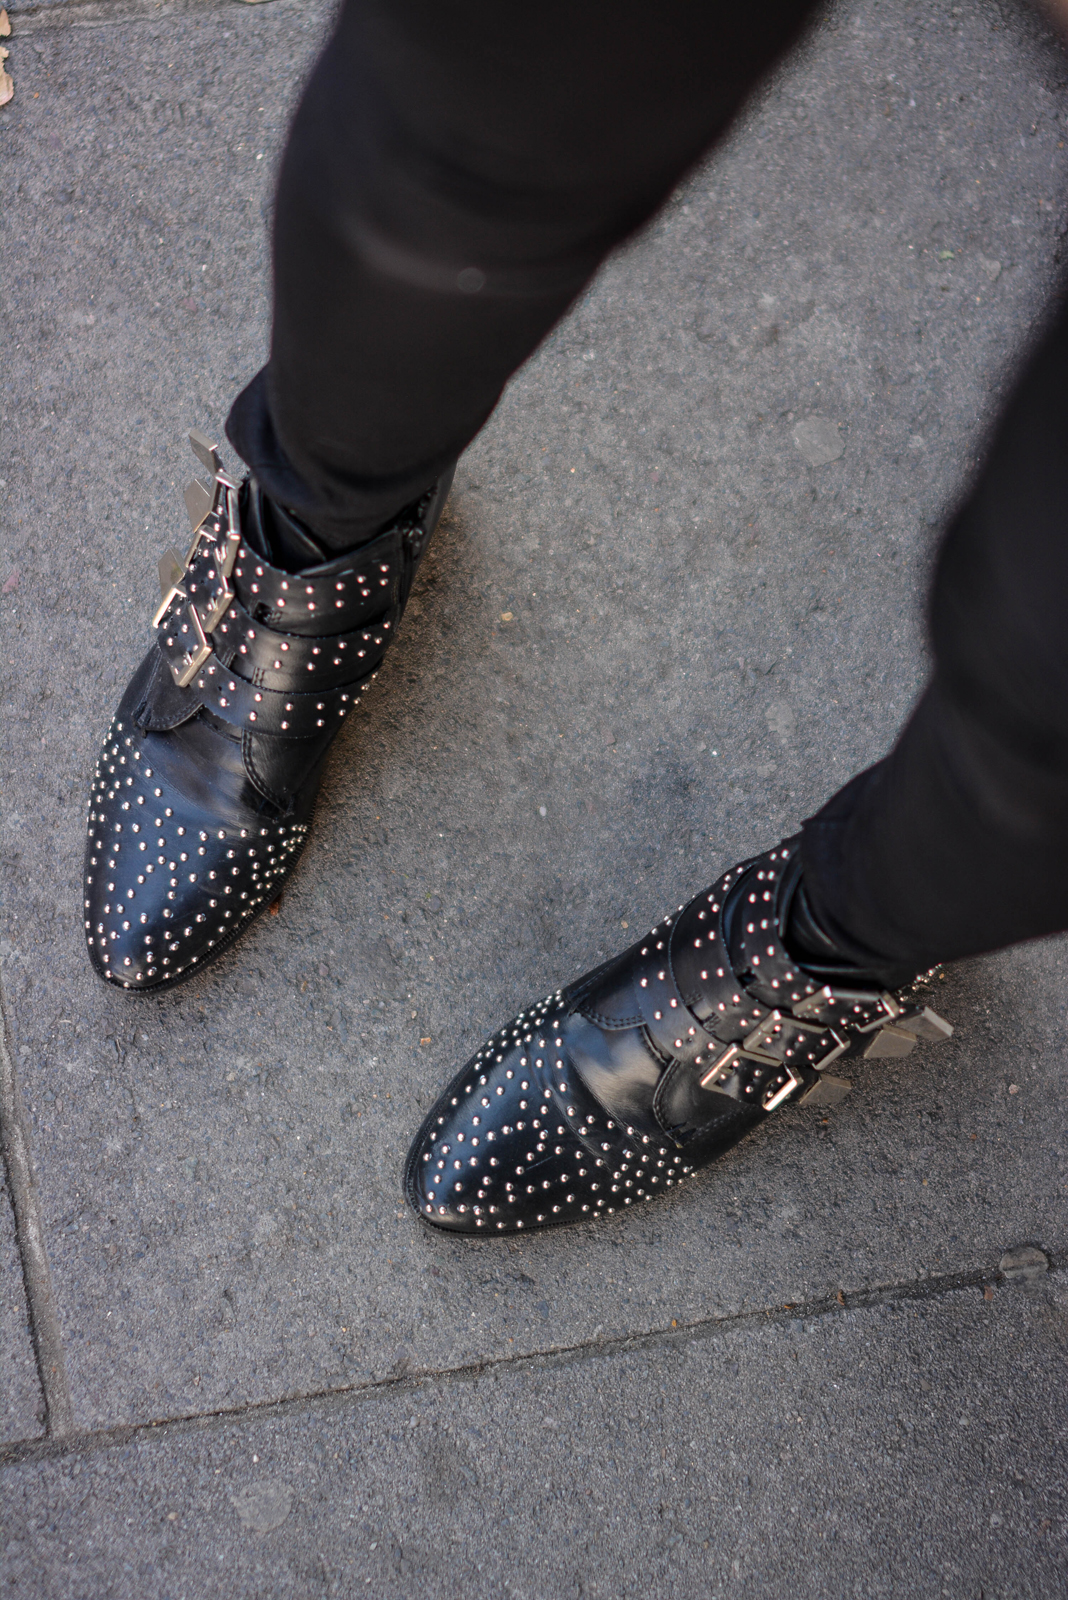 EJSTYLE - Emma Hill wears ripped black skinny jeans, black studded ankle boots, chloe susanna style boots